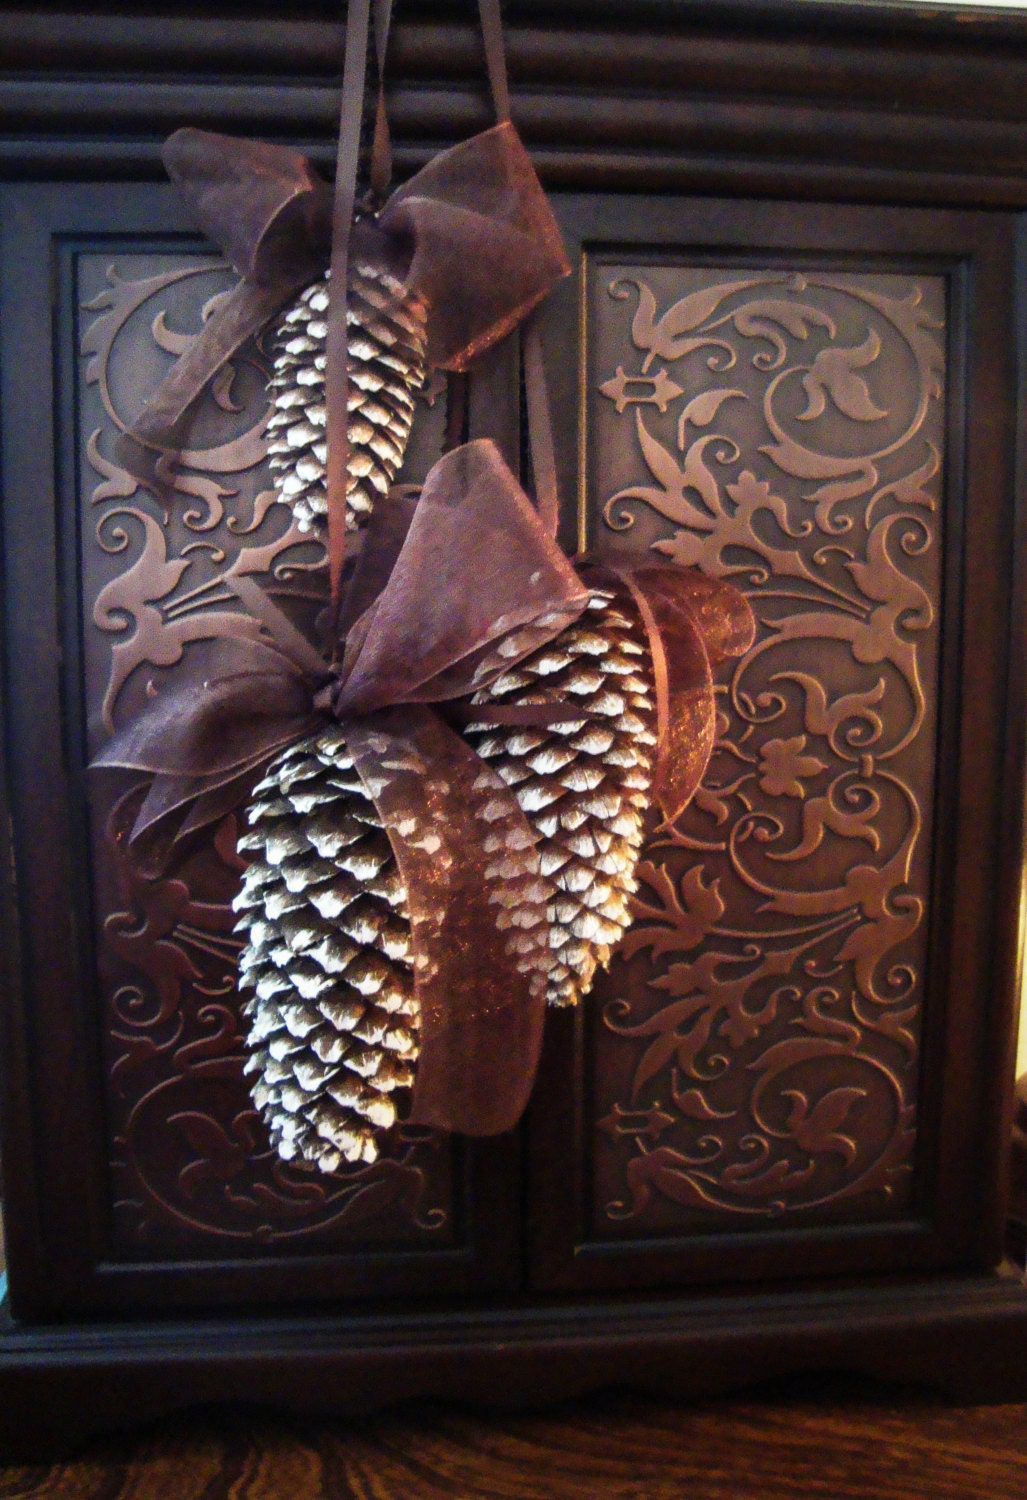 Natural Pine Cone Ornaments - Natural Christmas Ornament - Set of 3 Pine Cones - Holiday - Winter Decor - Gift Ideas - Housewarming Gift